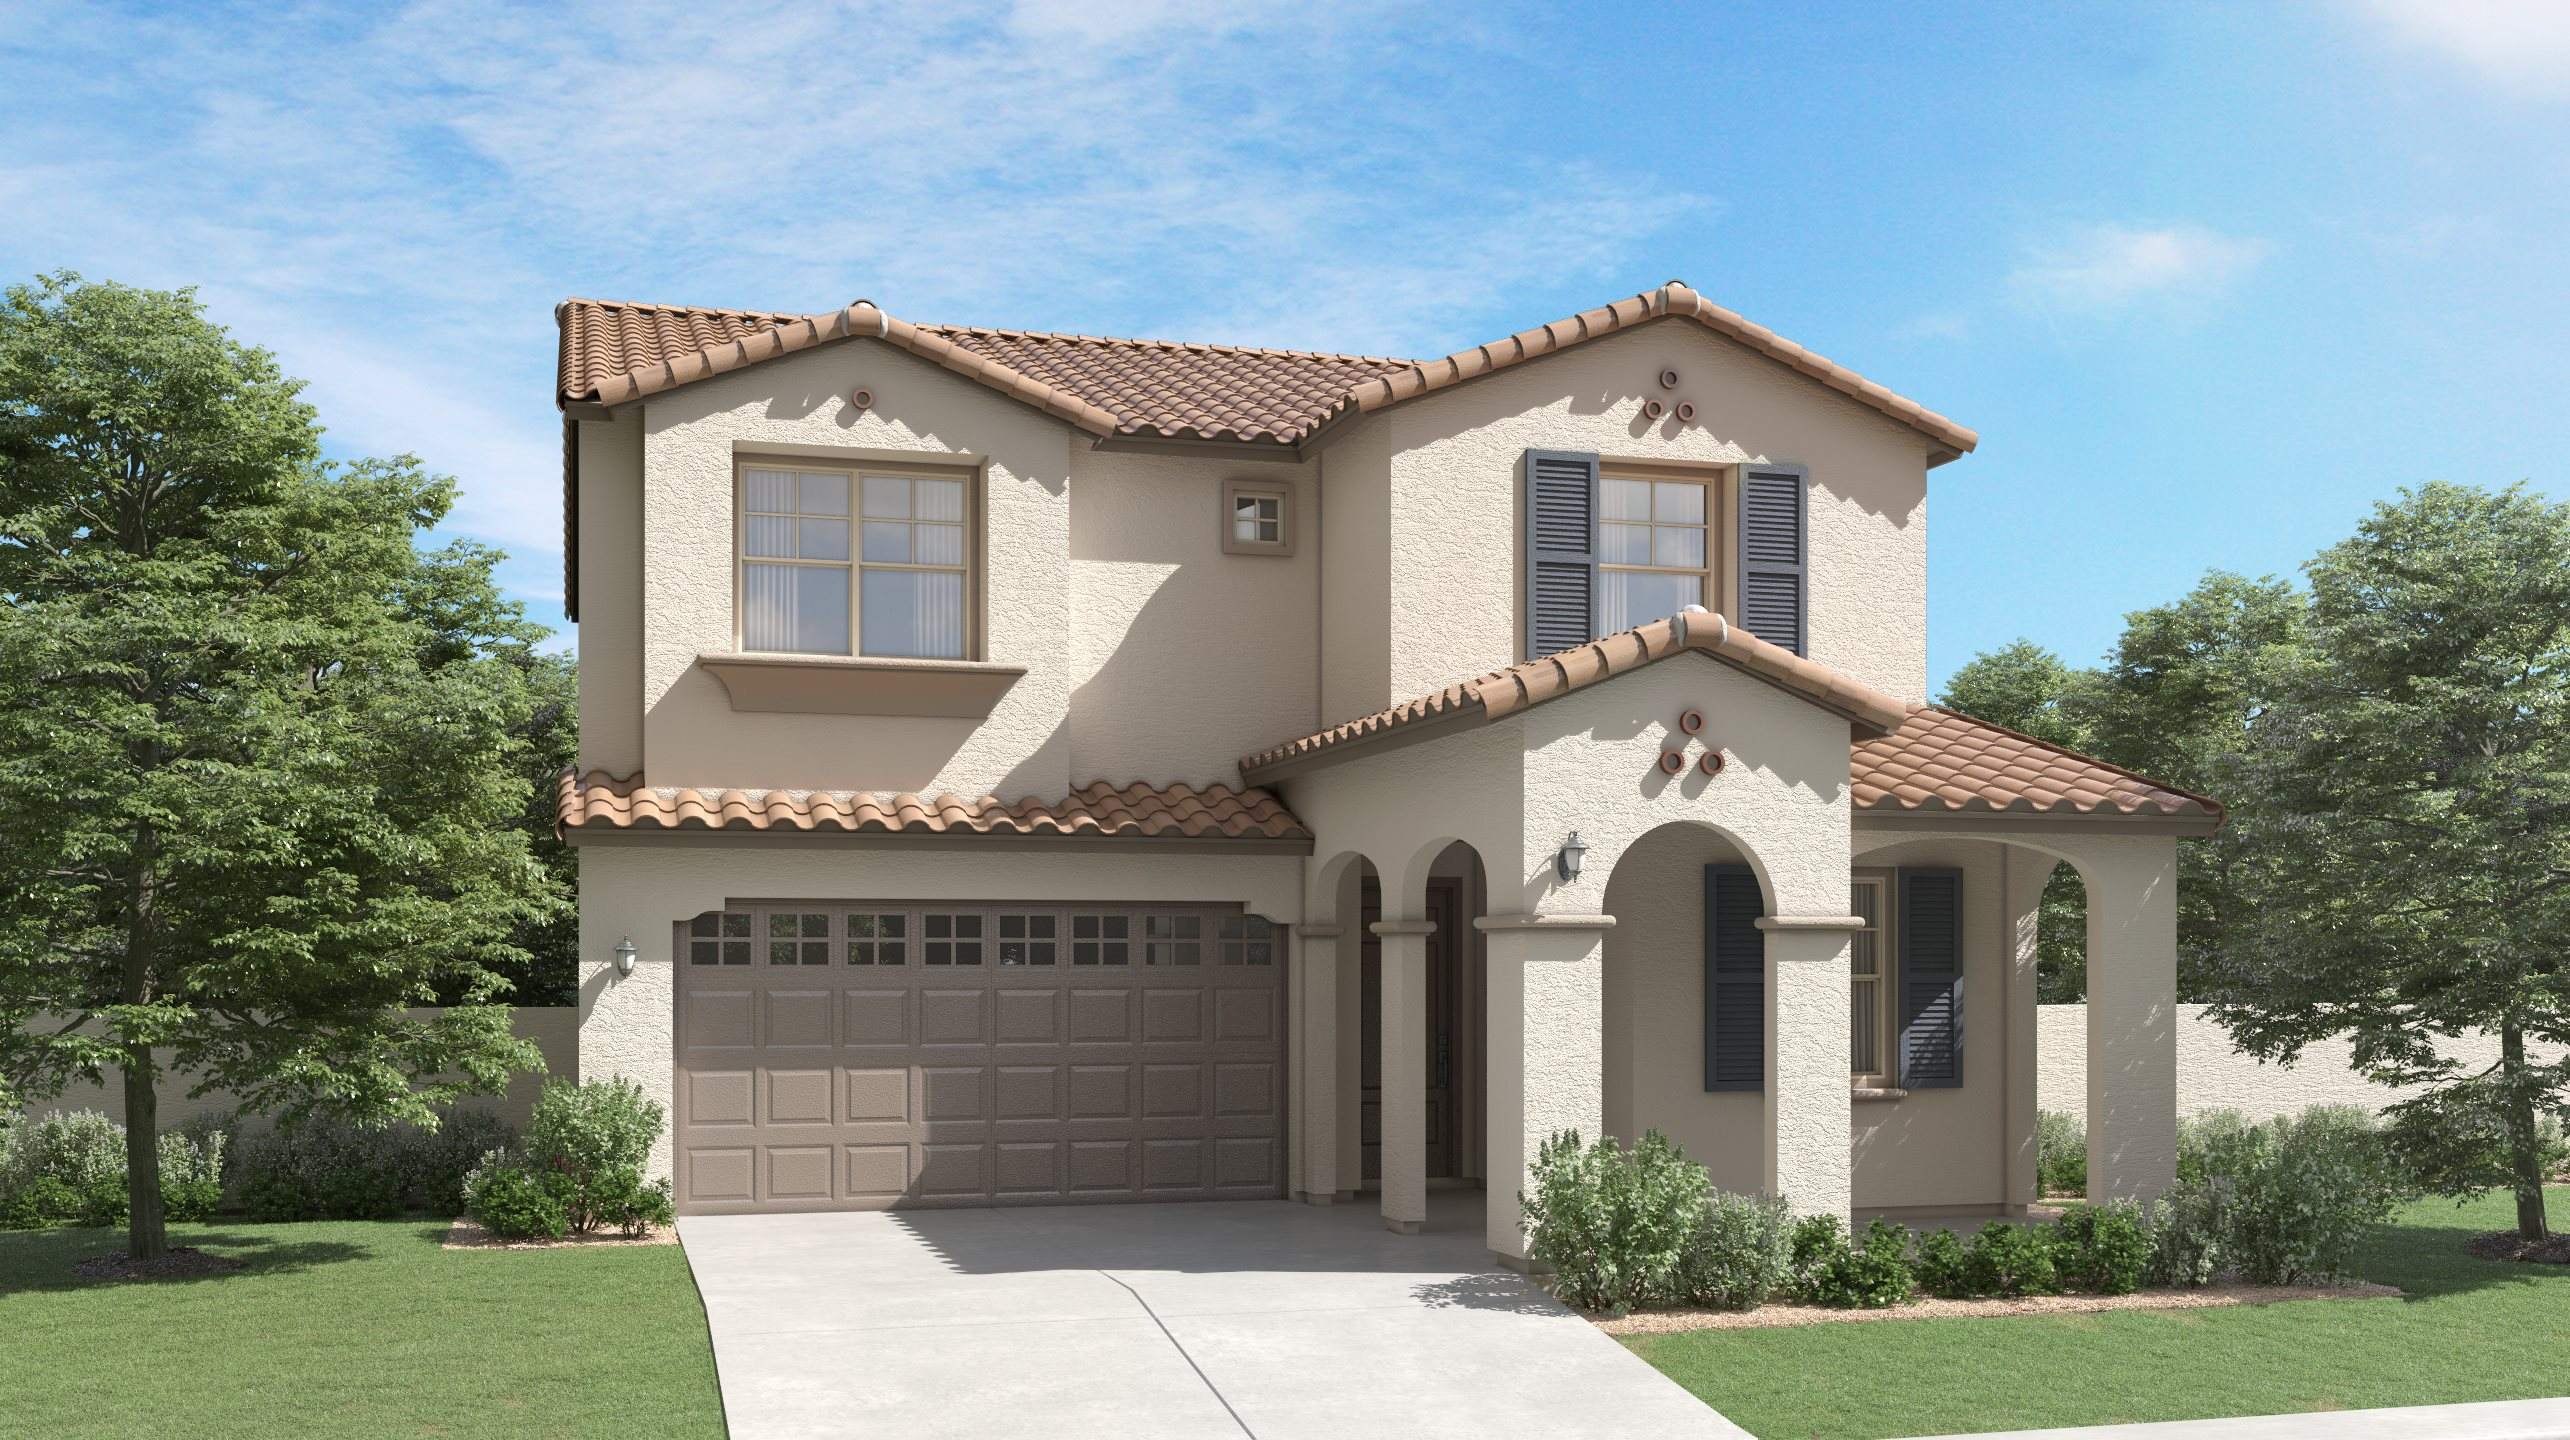 Spanish Colonial Exterior for Plan 3524